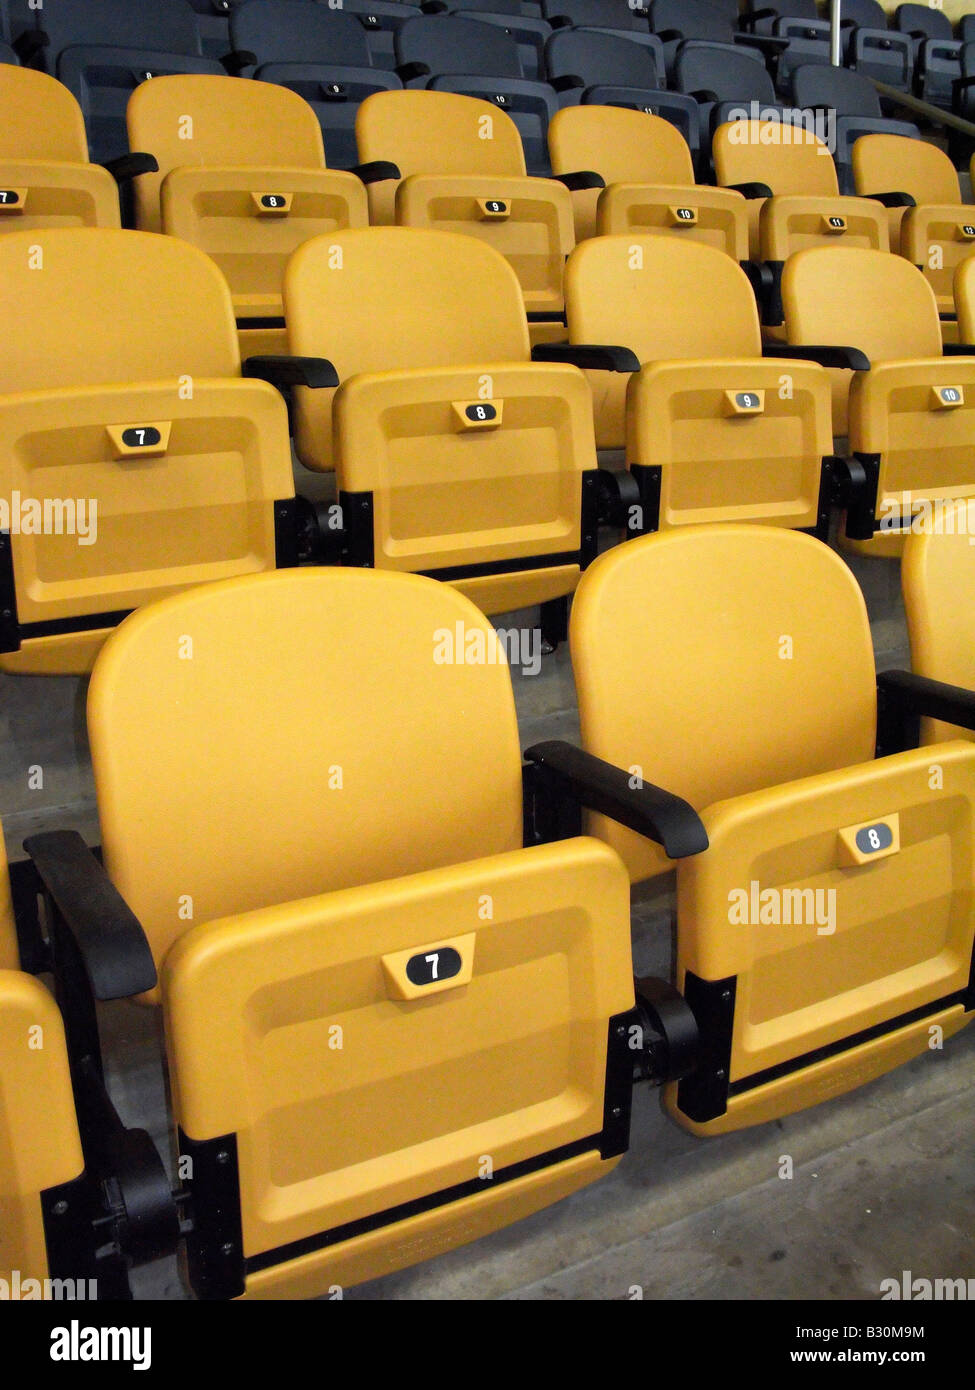 Stadium seats - Stock Image